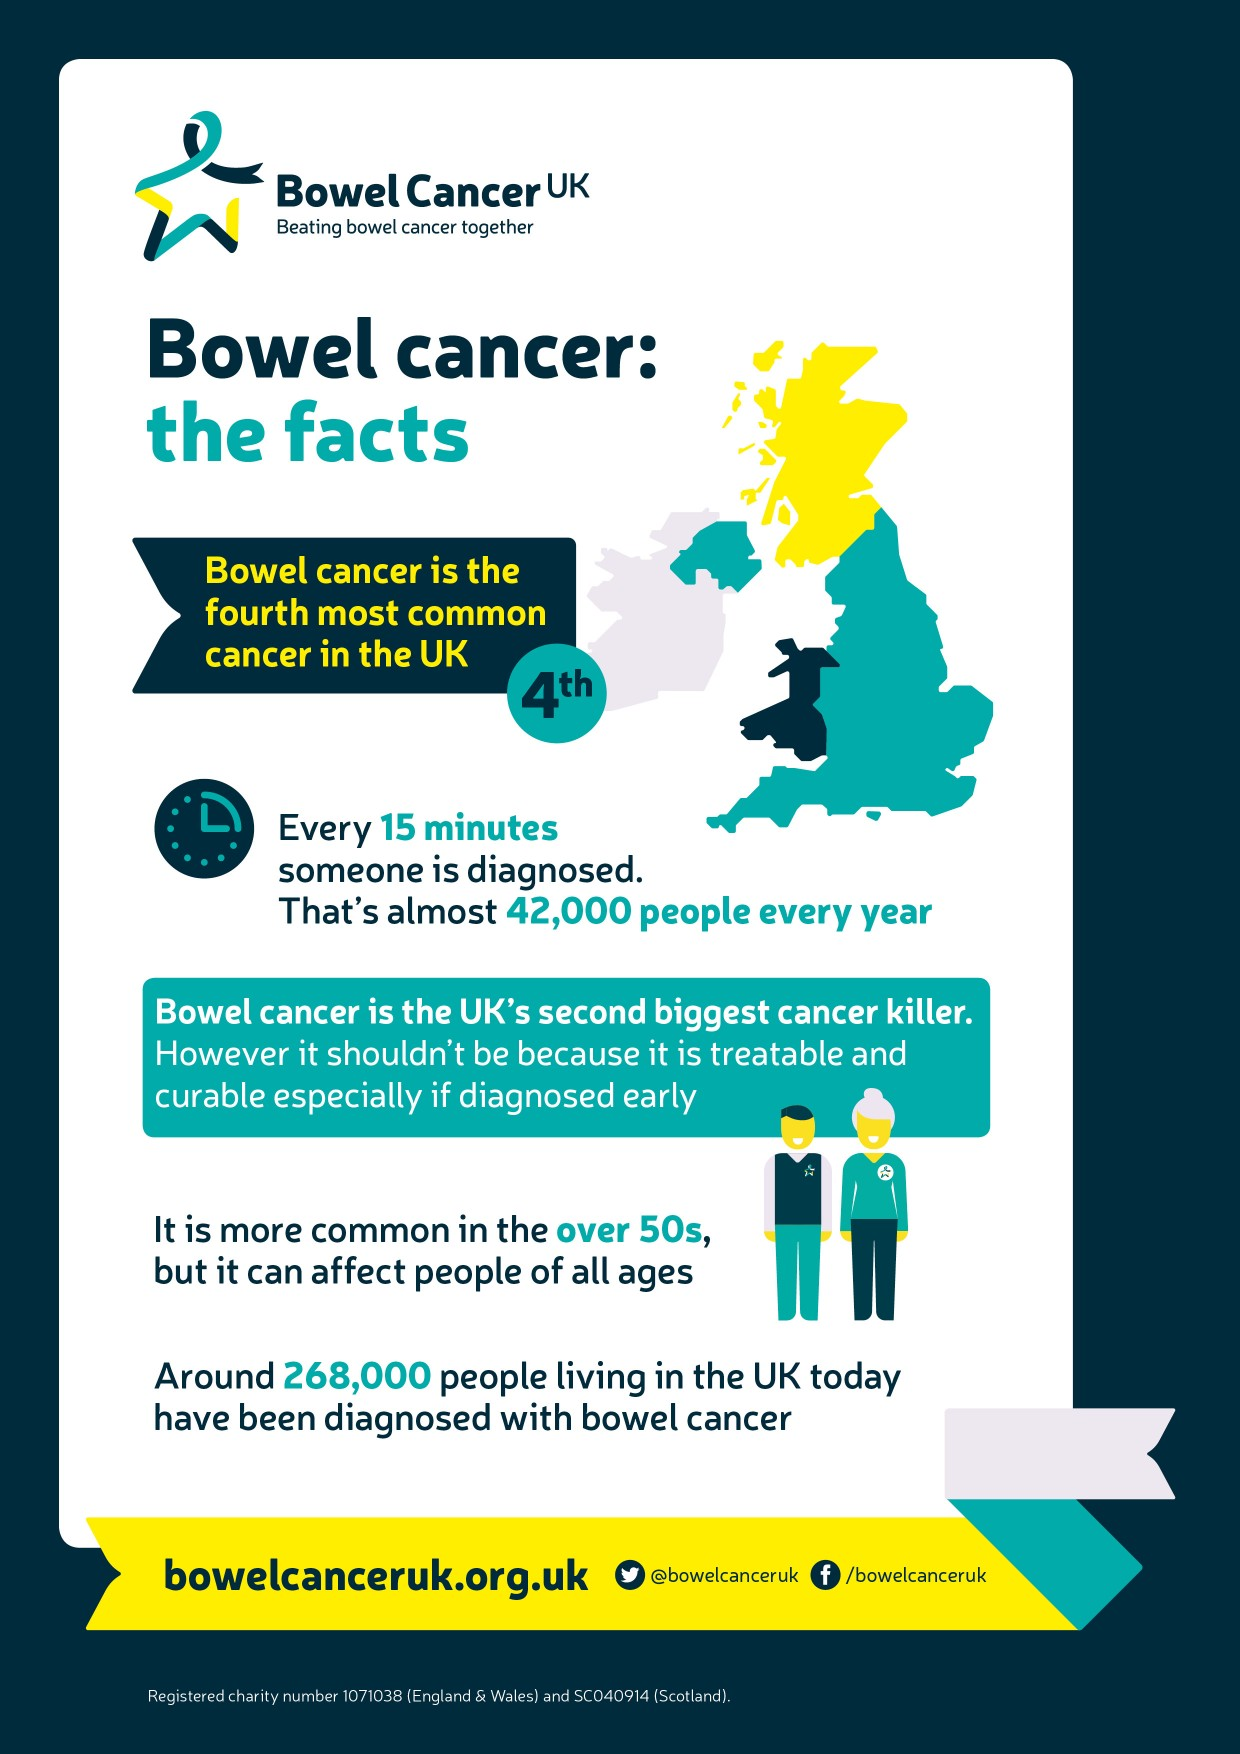 A journalist's guide | Bowel Cancer UK